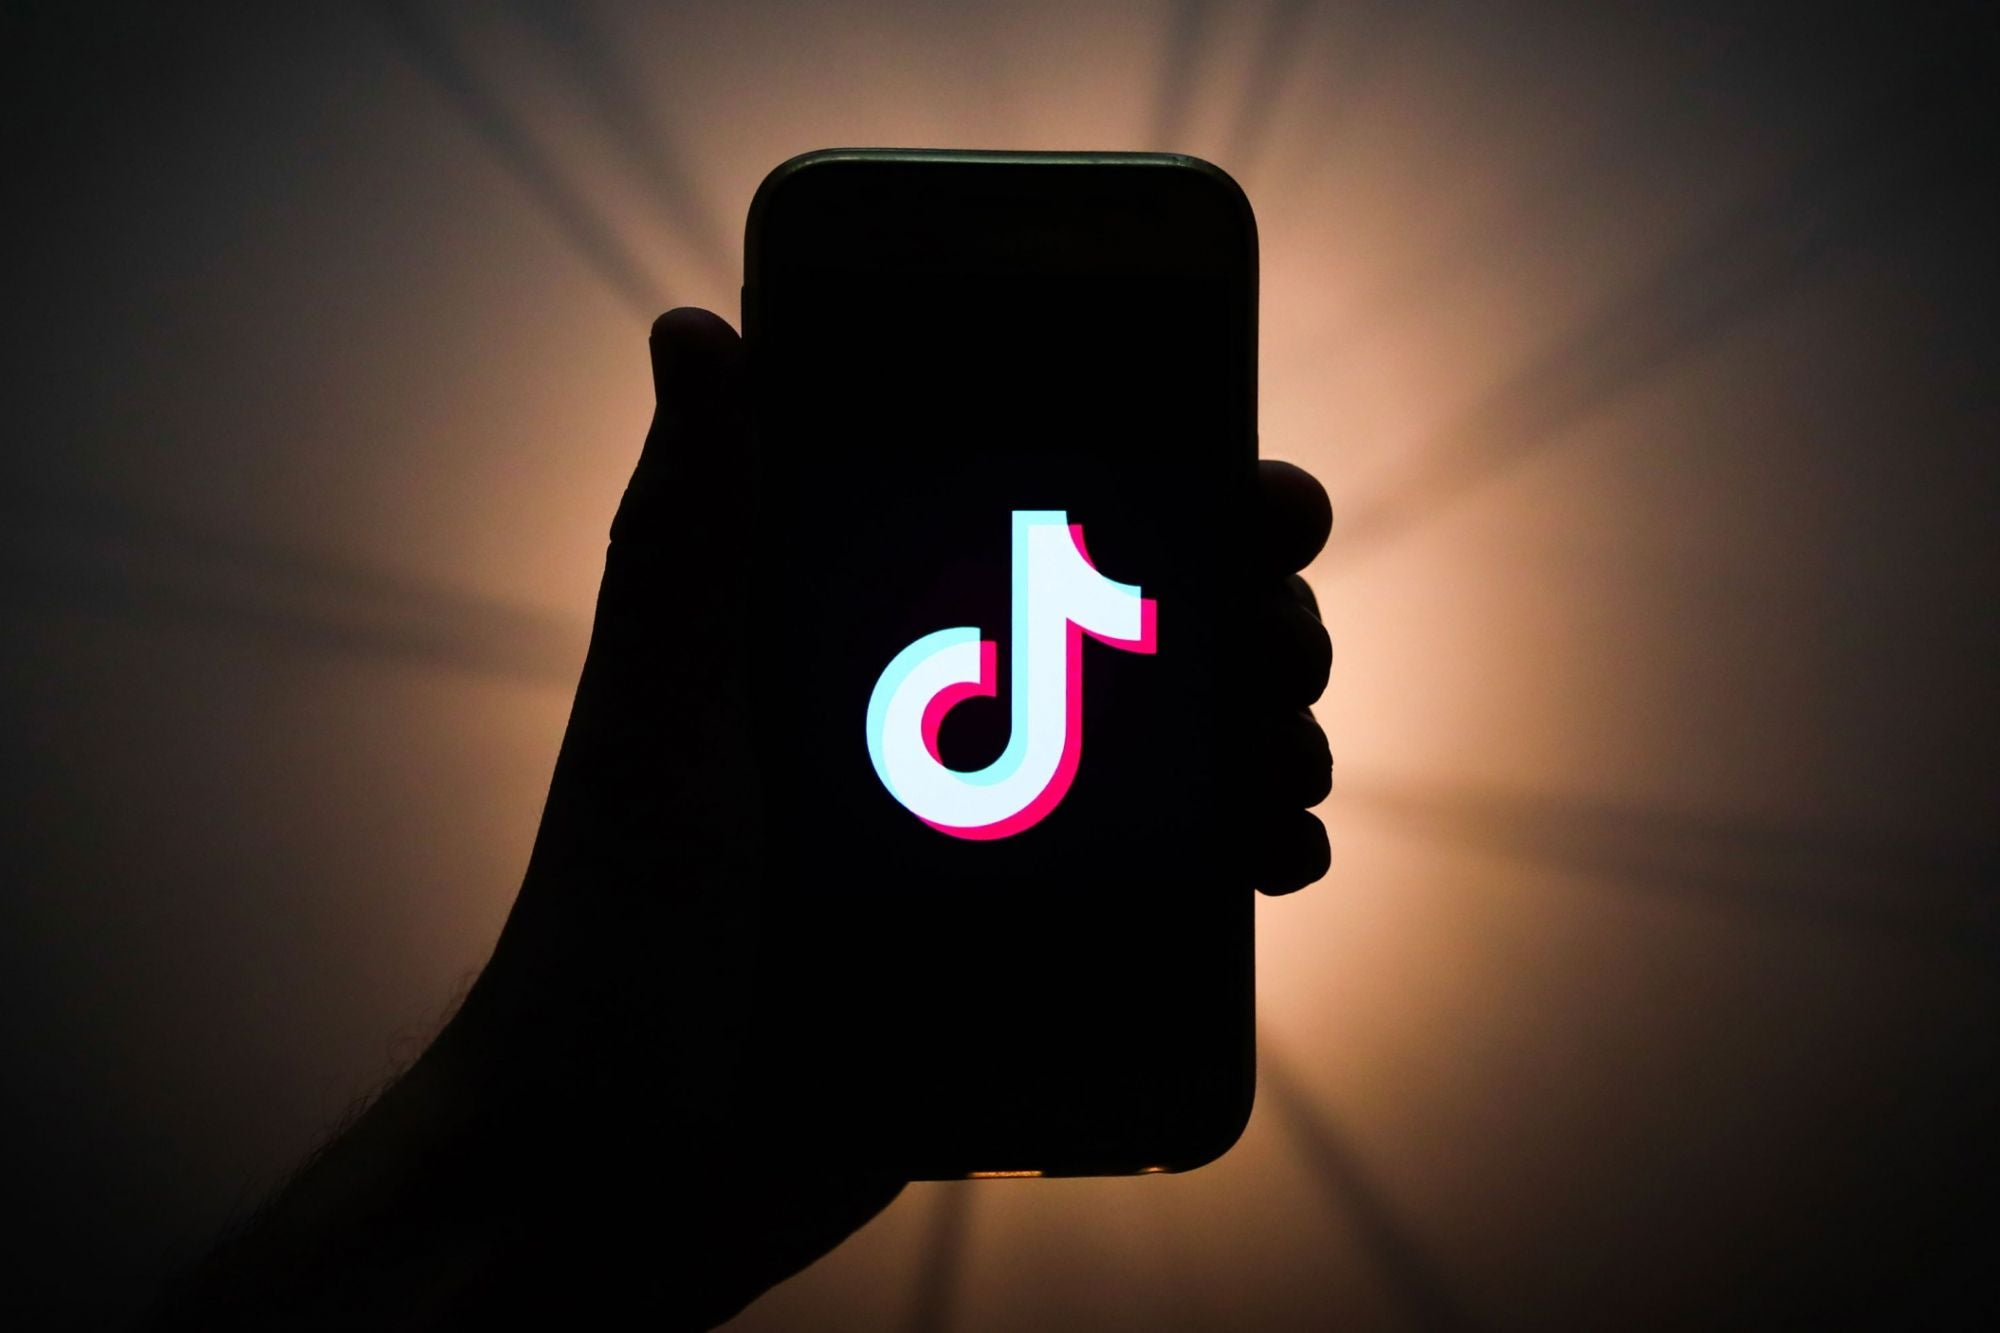 TikTok Censored 'Ugly, Poor or Disabled' People to Attract More Users